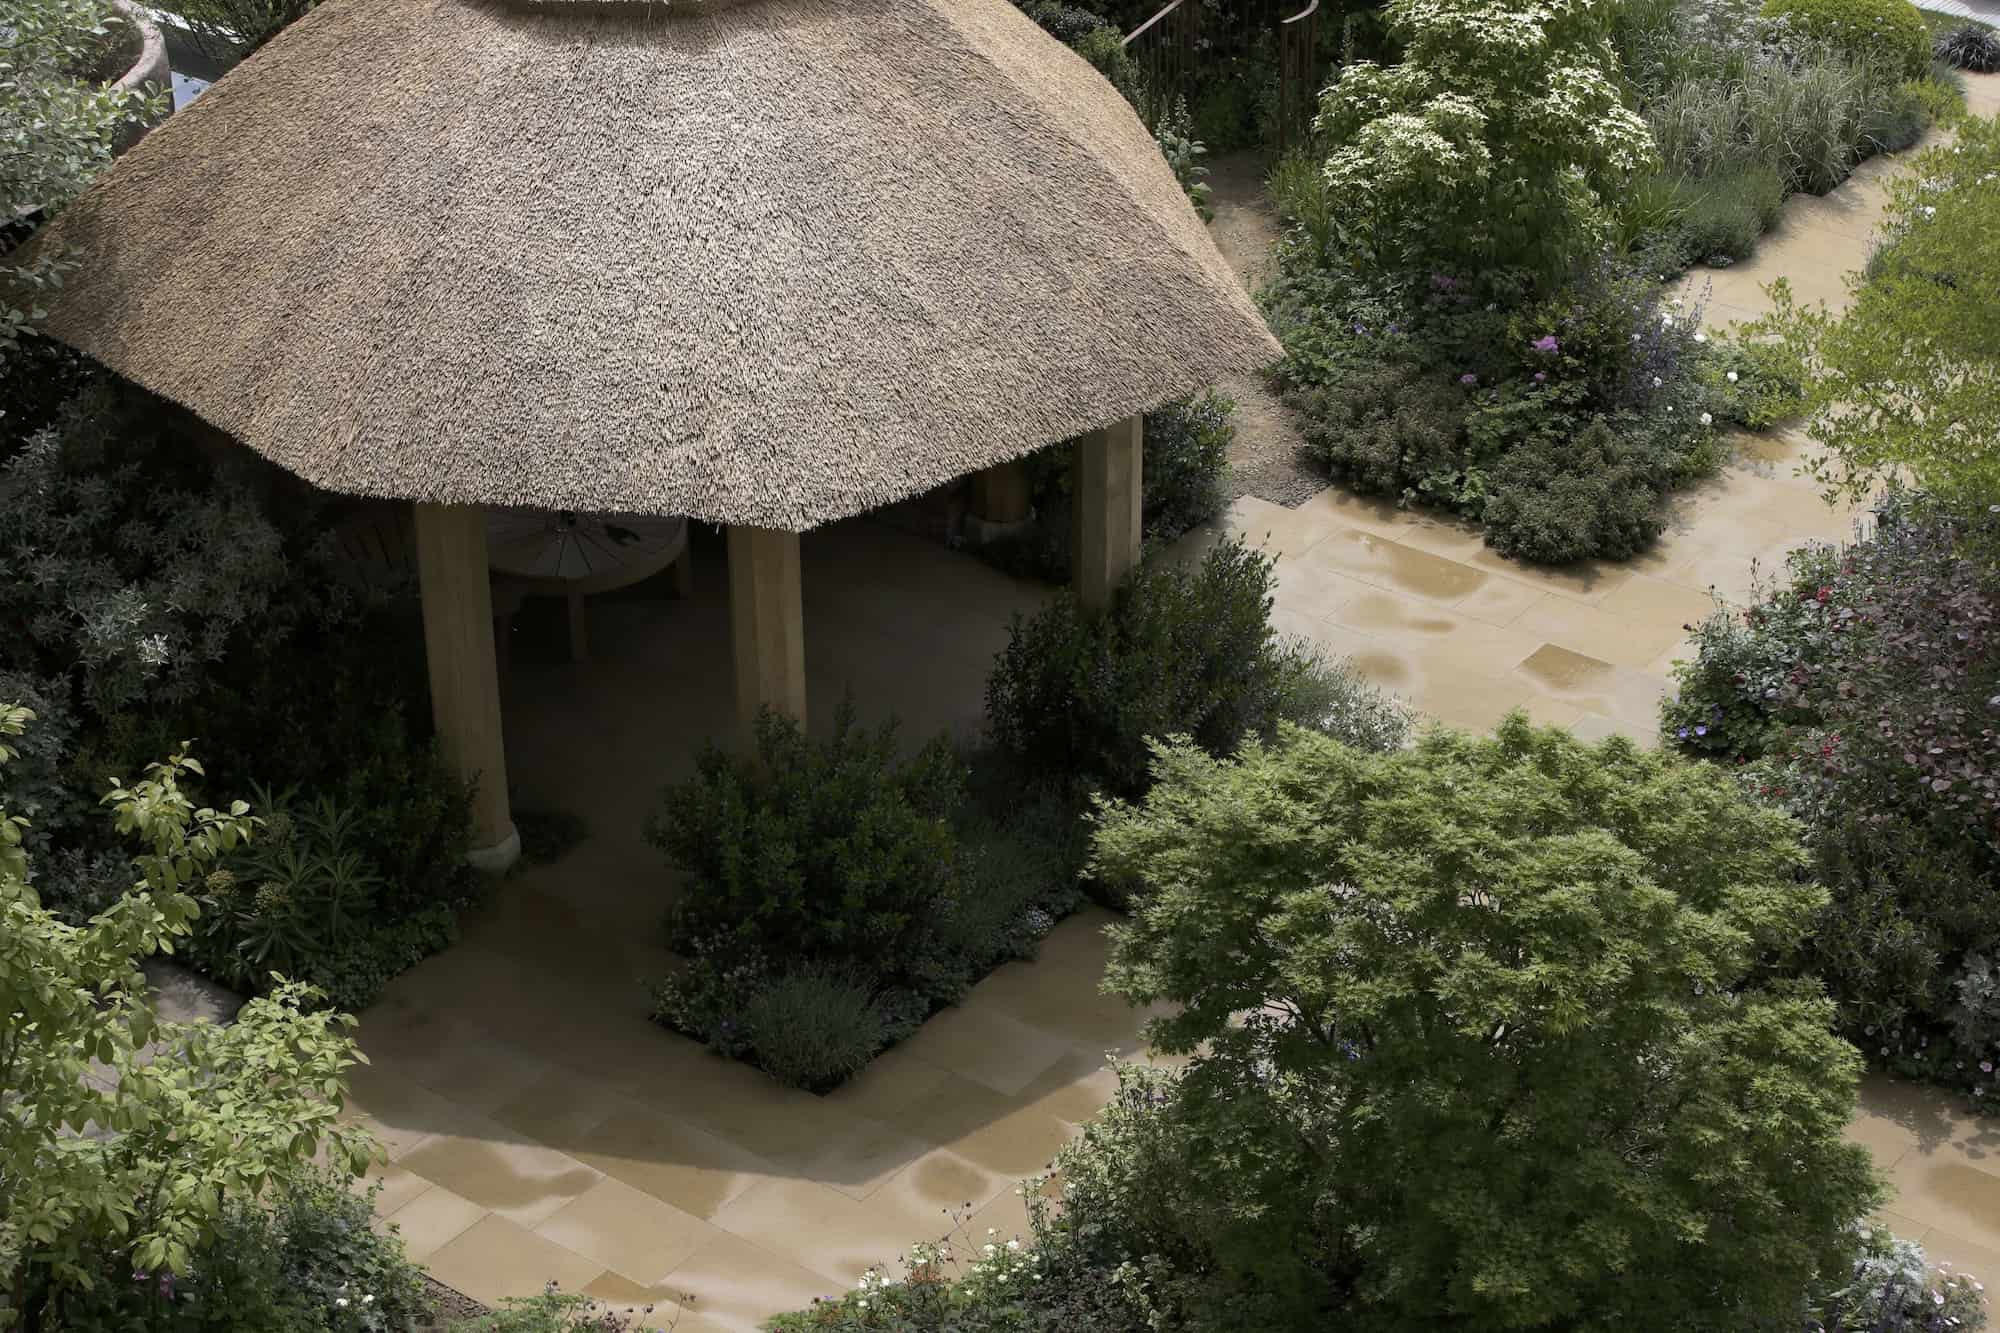 Chelsea Garden Design Thatched Summerhouse awarded Gold Medal designed by Roger Platts